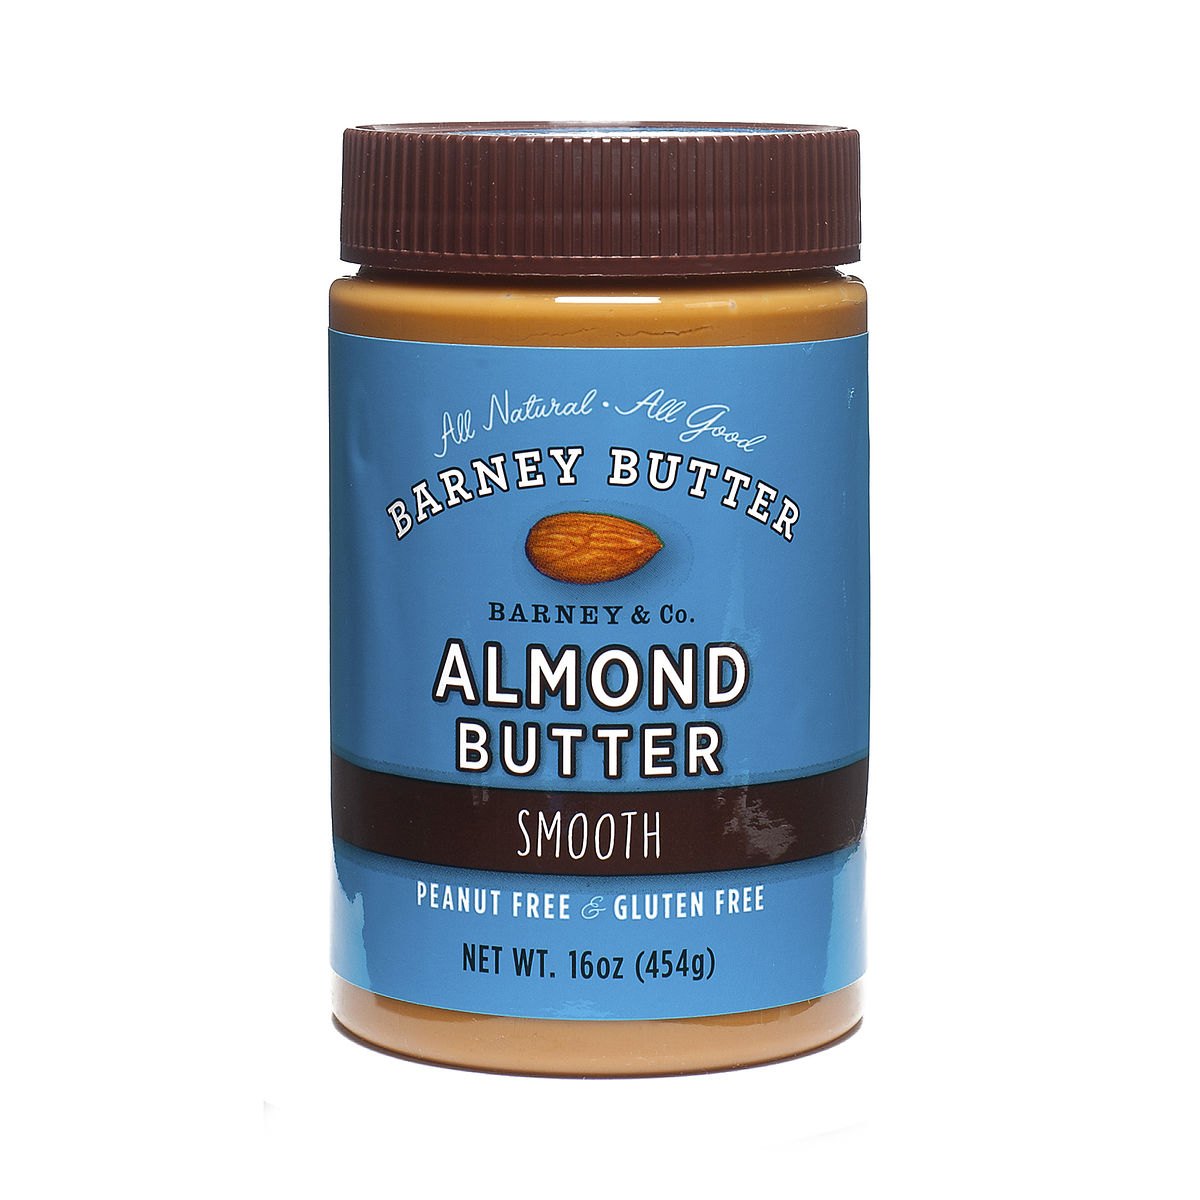 16 oz Smooth Almond Butter by Barney Butter - Thrive Market Almond Butter